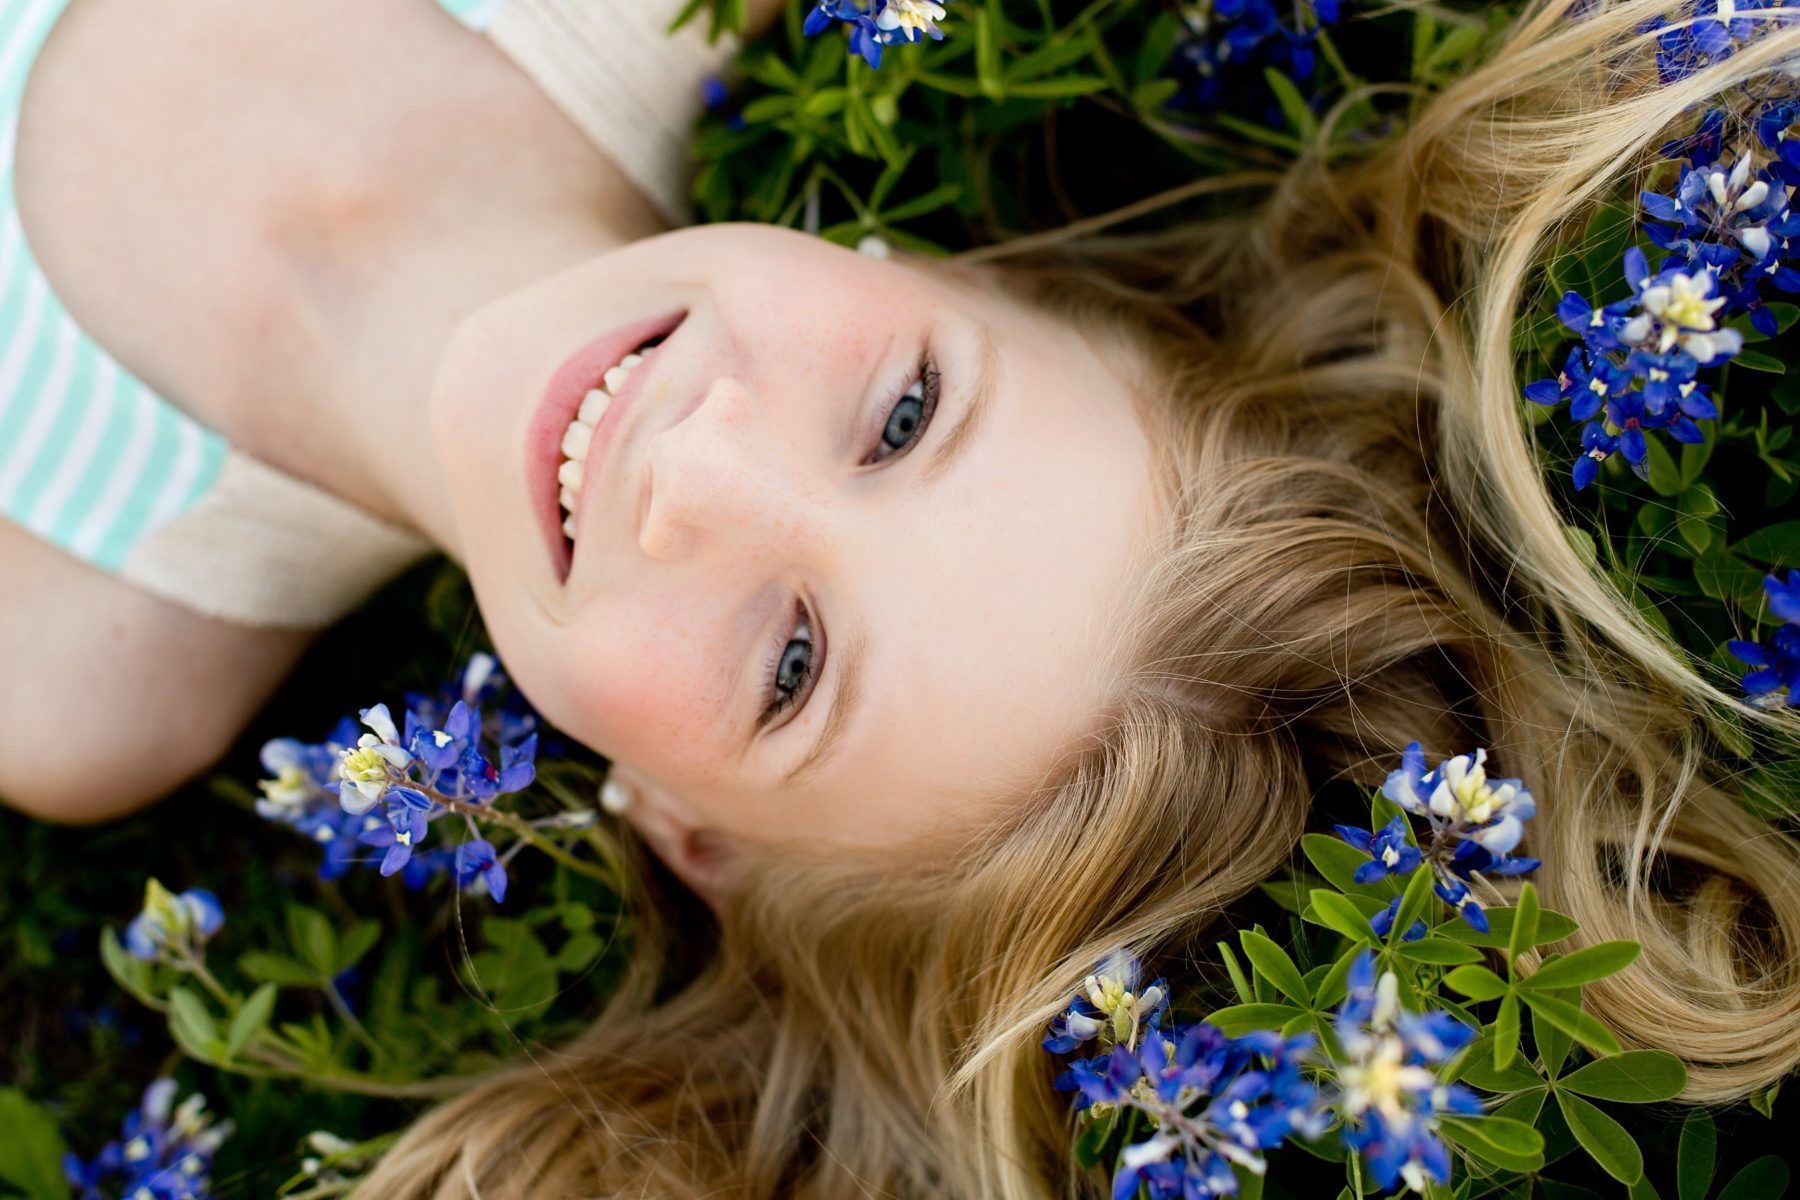 11 year old girl laying down in bluebonnets - prosper, tx